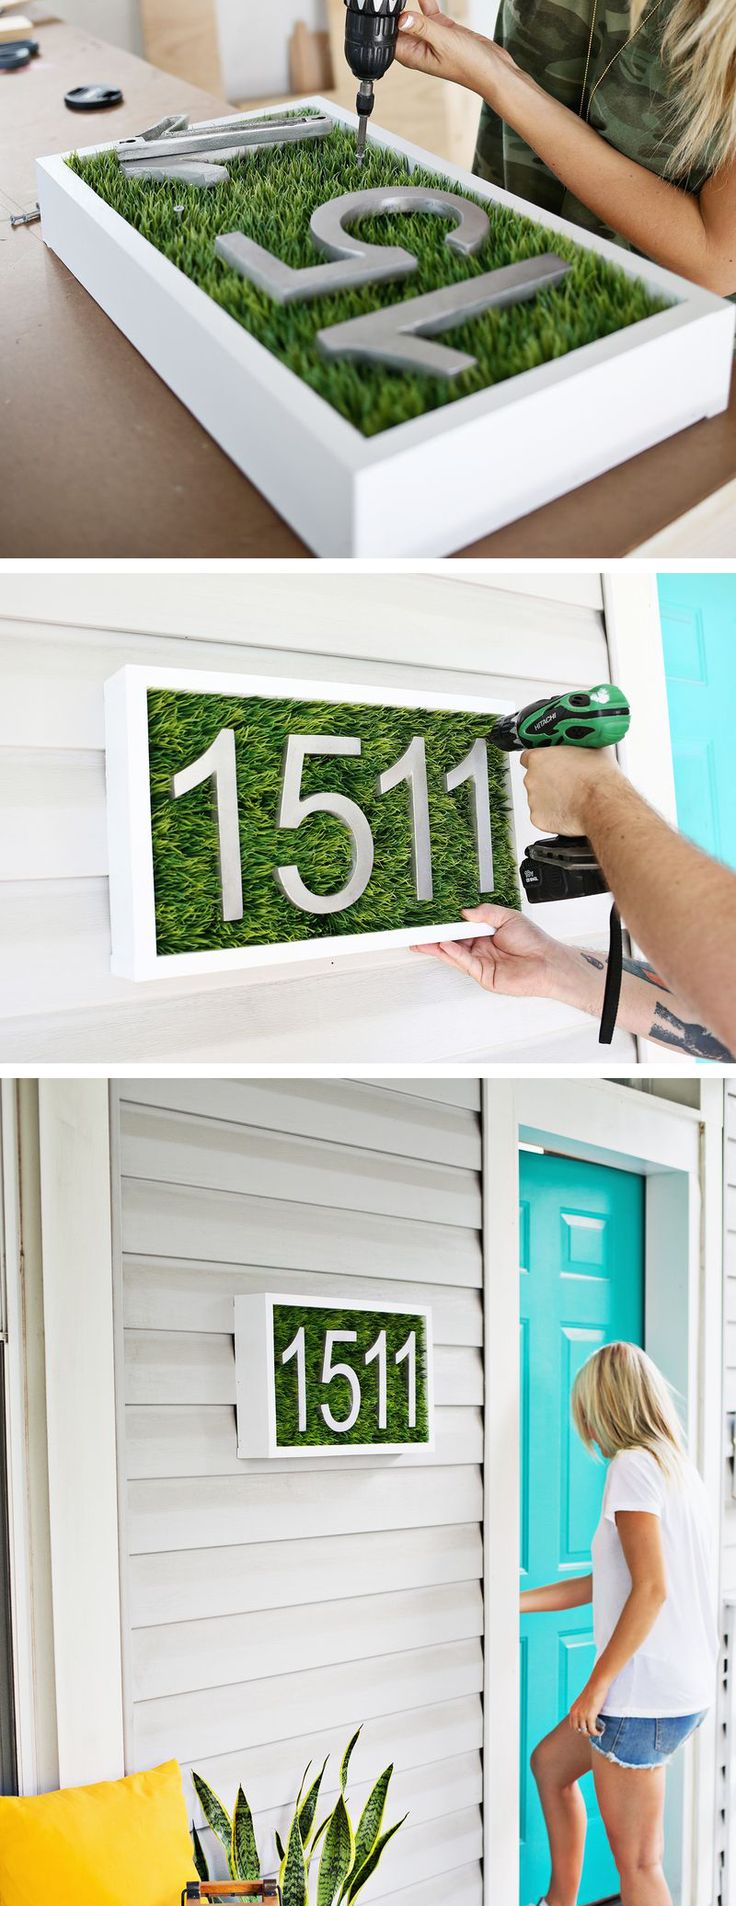 Creative house number display